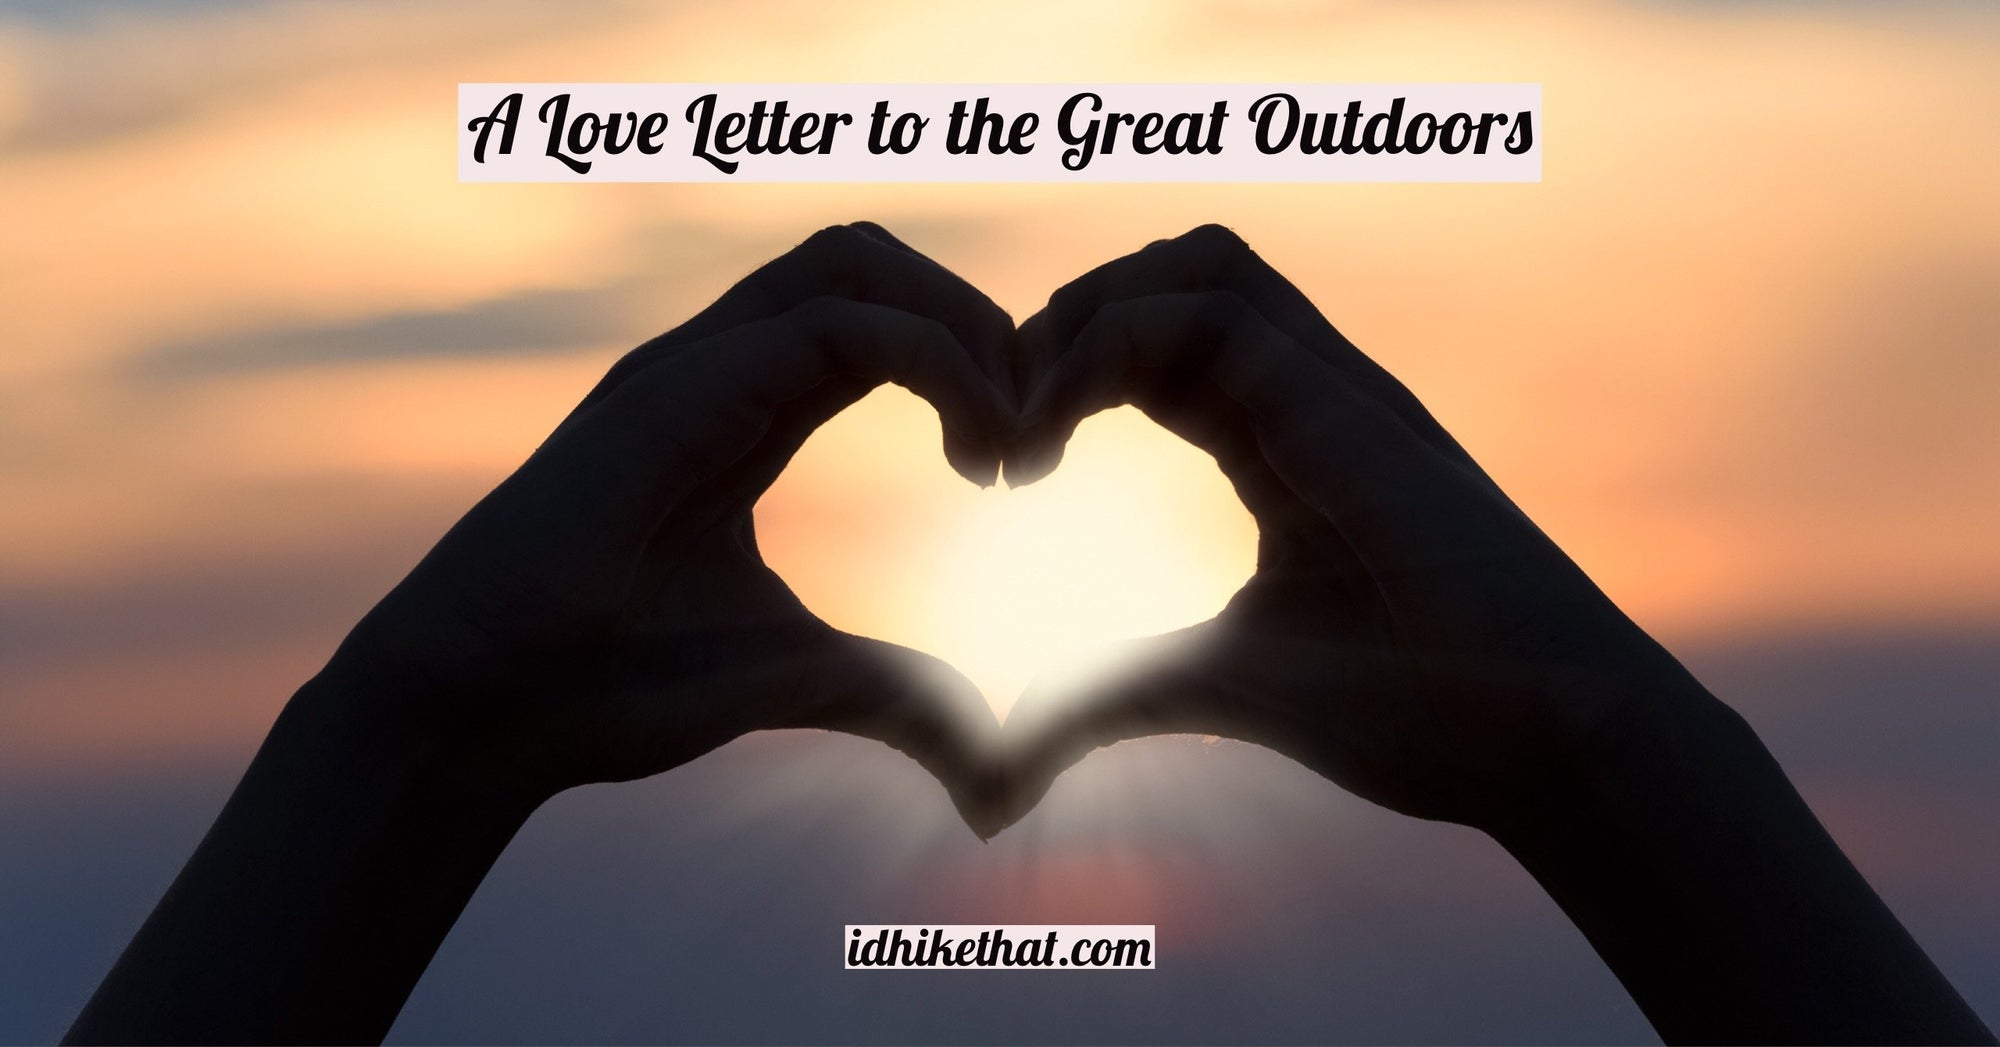 This Valentines's Day, enjoy this letter to the great outdoors. The true love that is always there for you. Read it at idhikethat.com